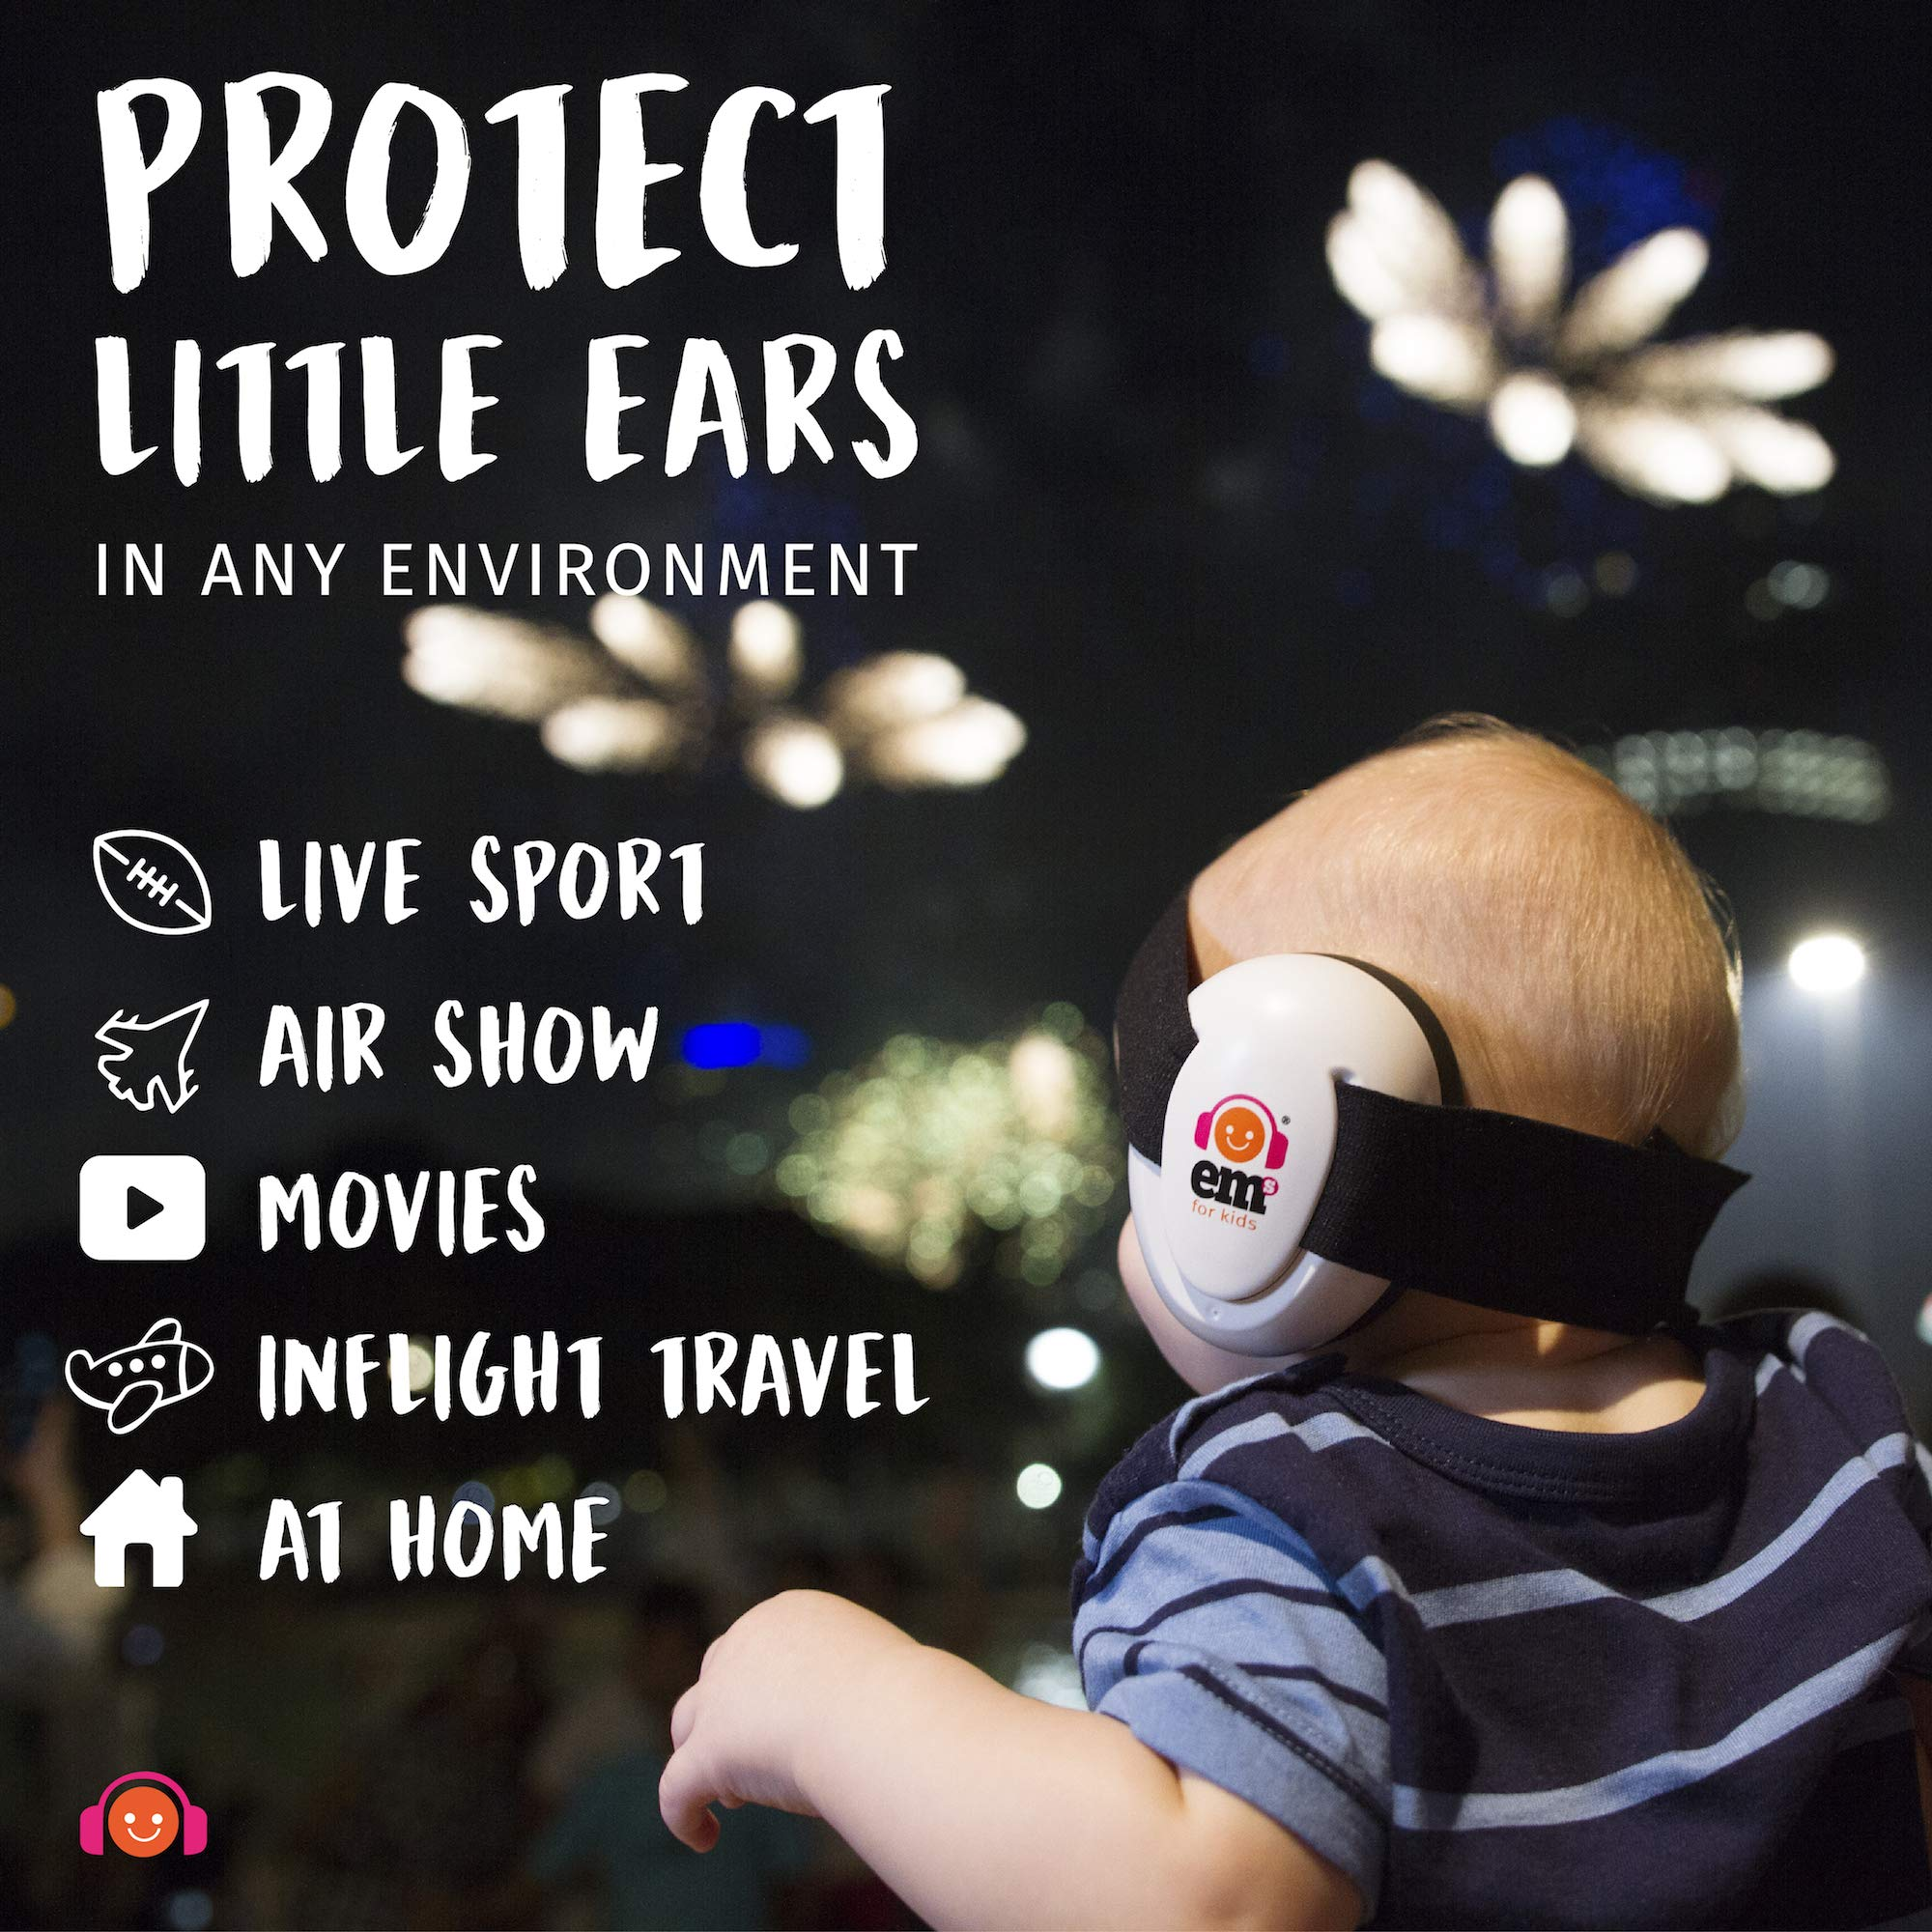 EMS for Kids Baby Earmuffs - White with Stars n Stripes. The Original Baby Earmuffs, Now Made in The USA. Great for Concerts, Music Festivals, Planes, NASCAR, Motor Racing, Power Tools and More! by Ems for Kids (Image #7)